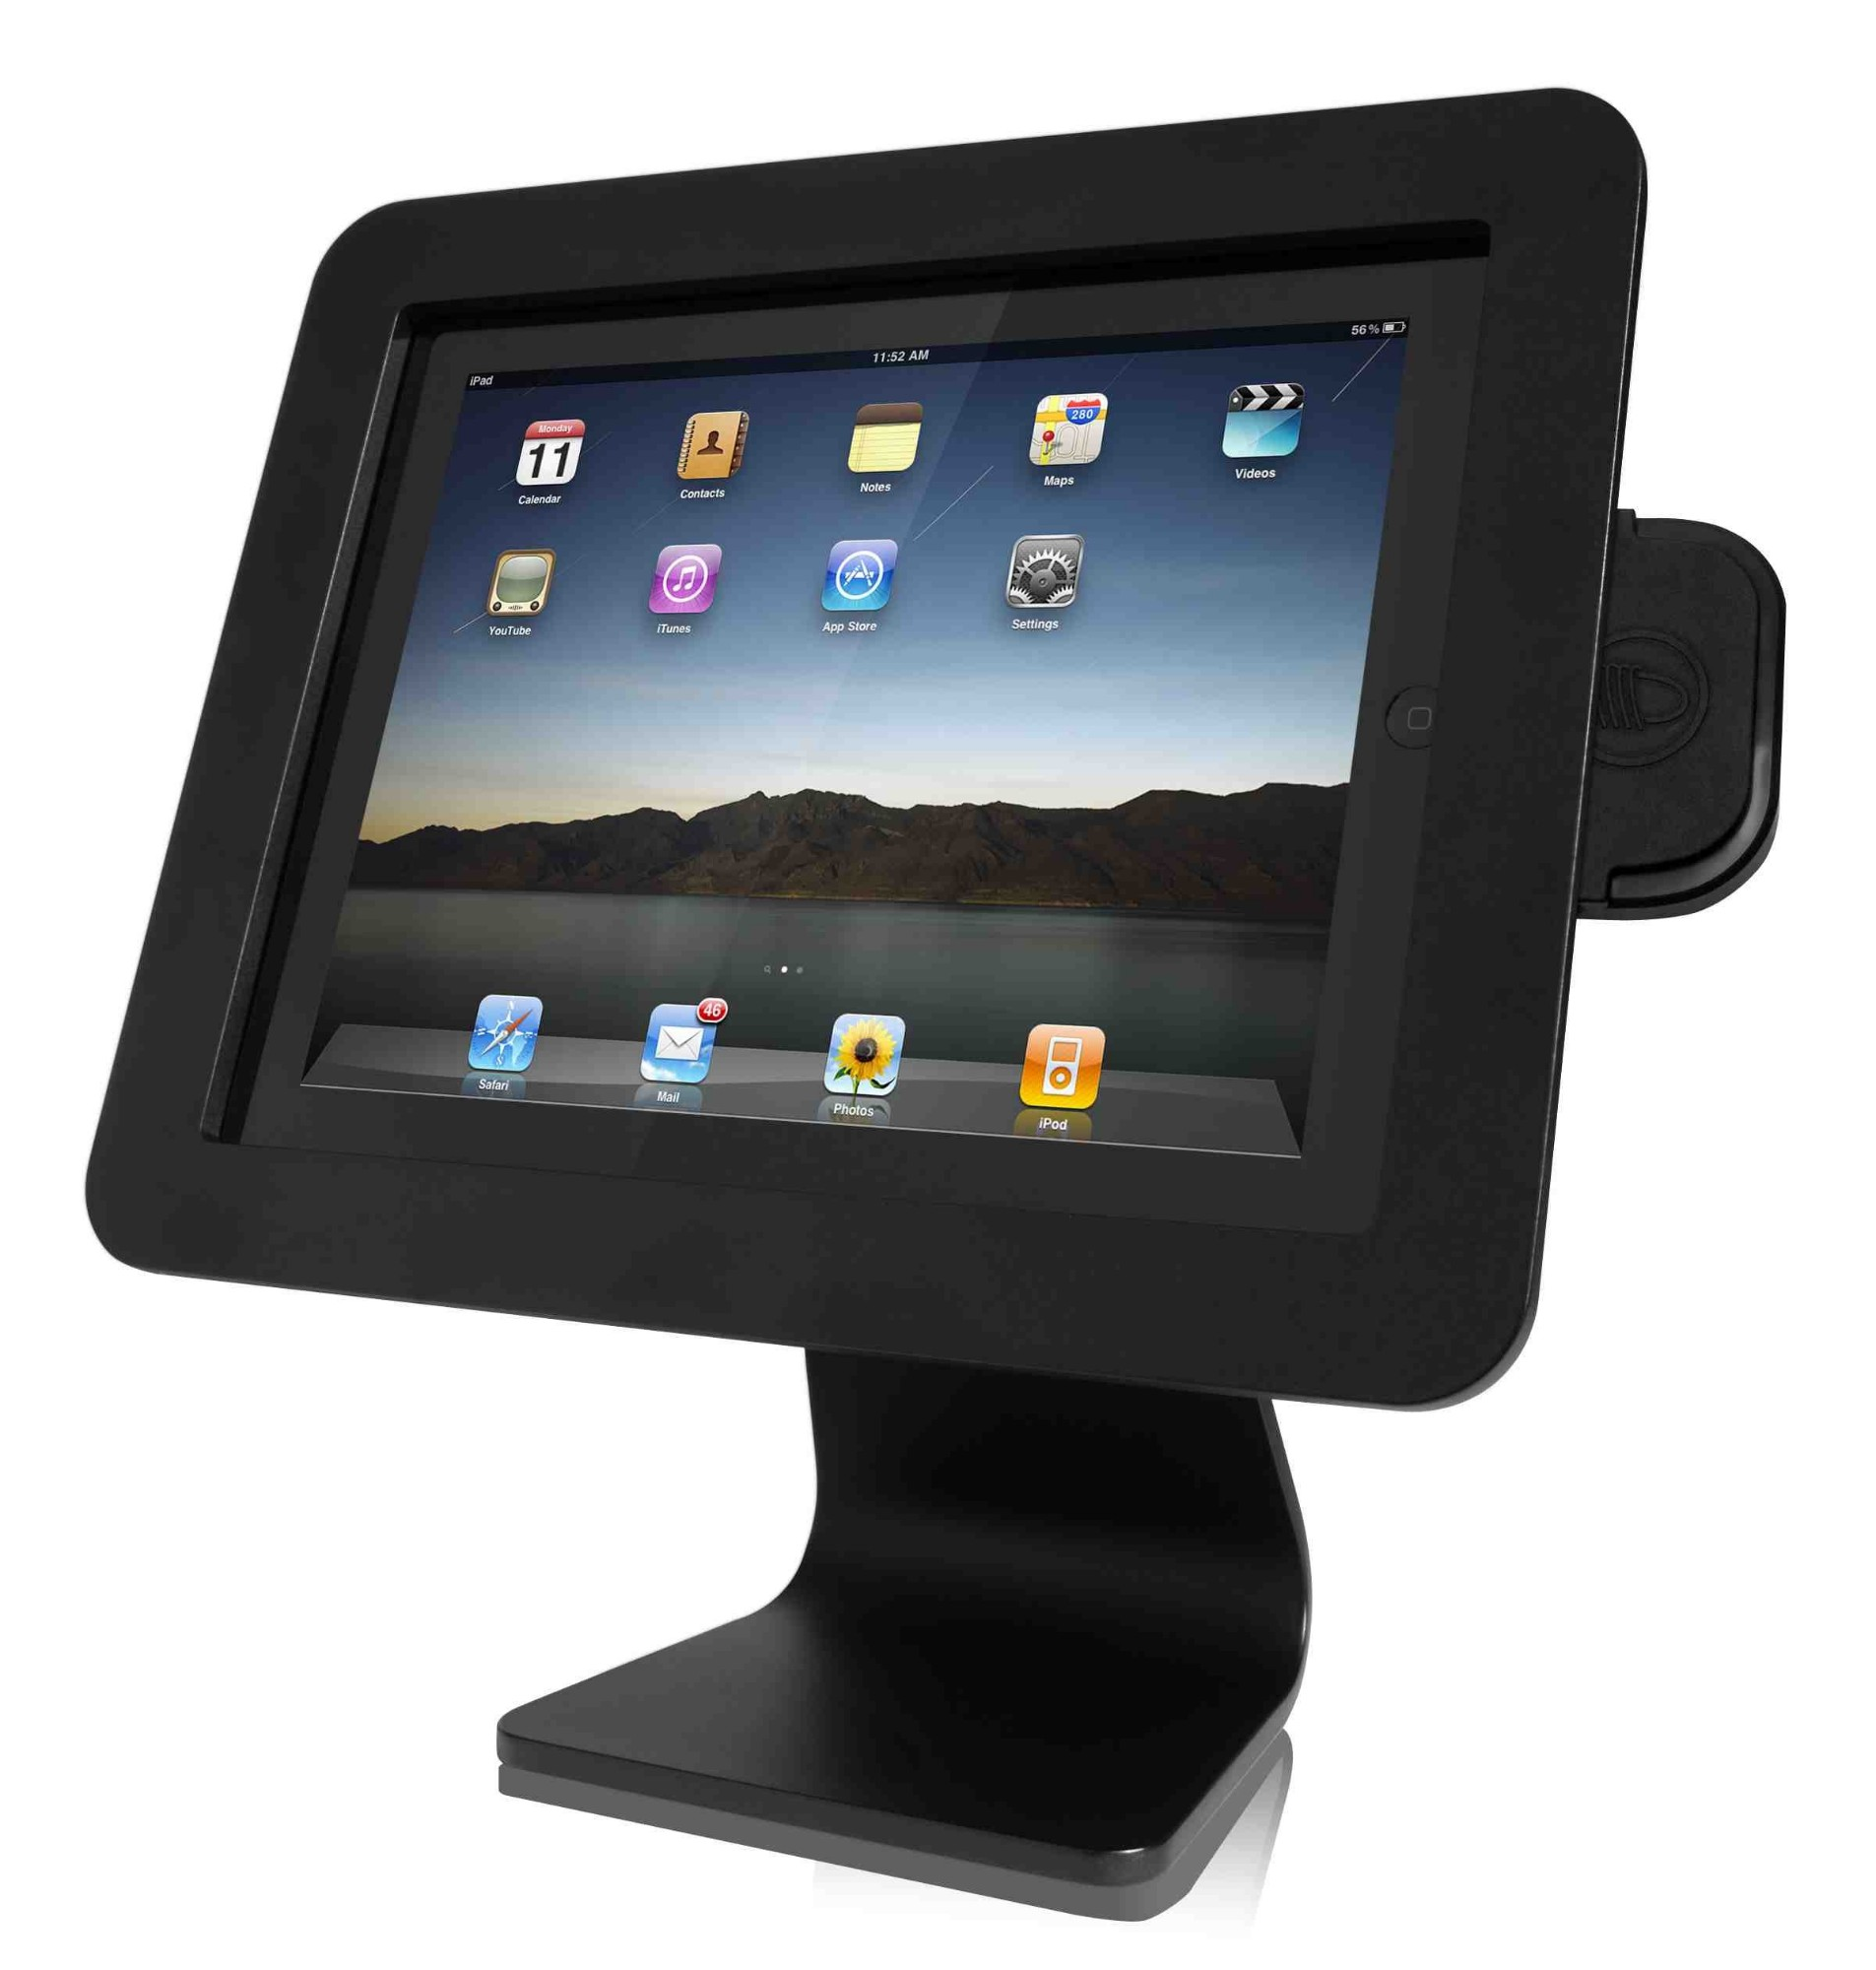 Compulocks iPad Enclosure Kiosk soporte de seguridad para tabletas Negro